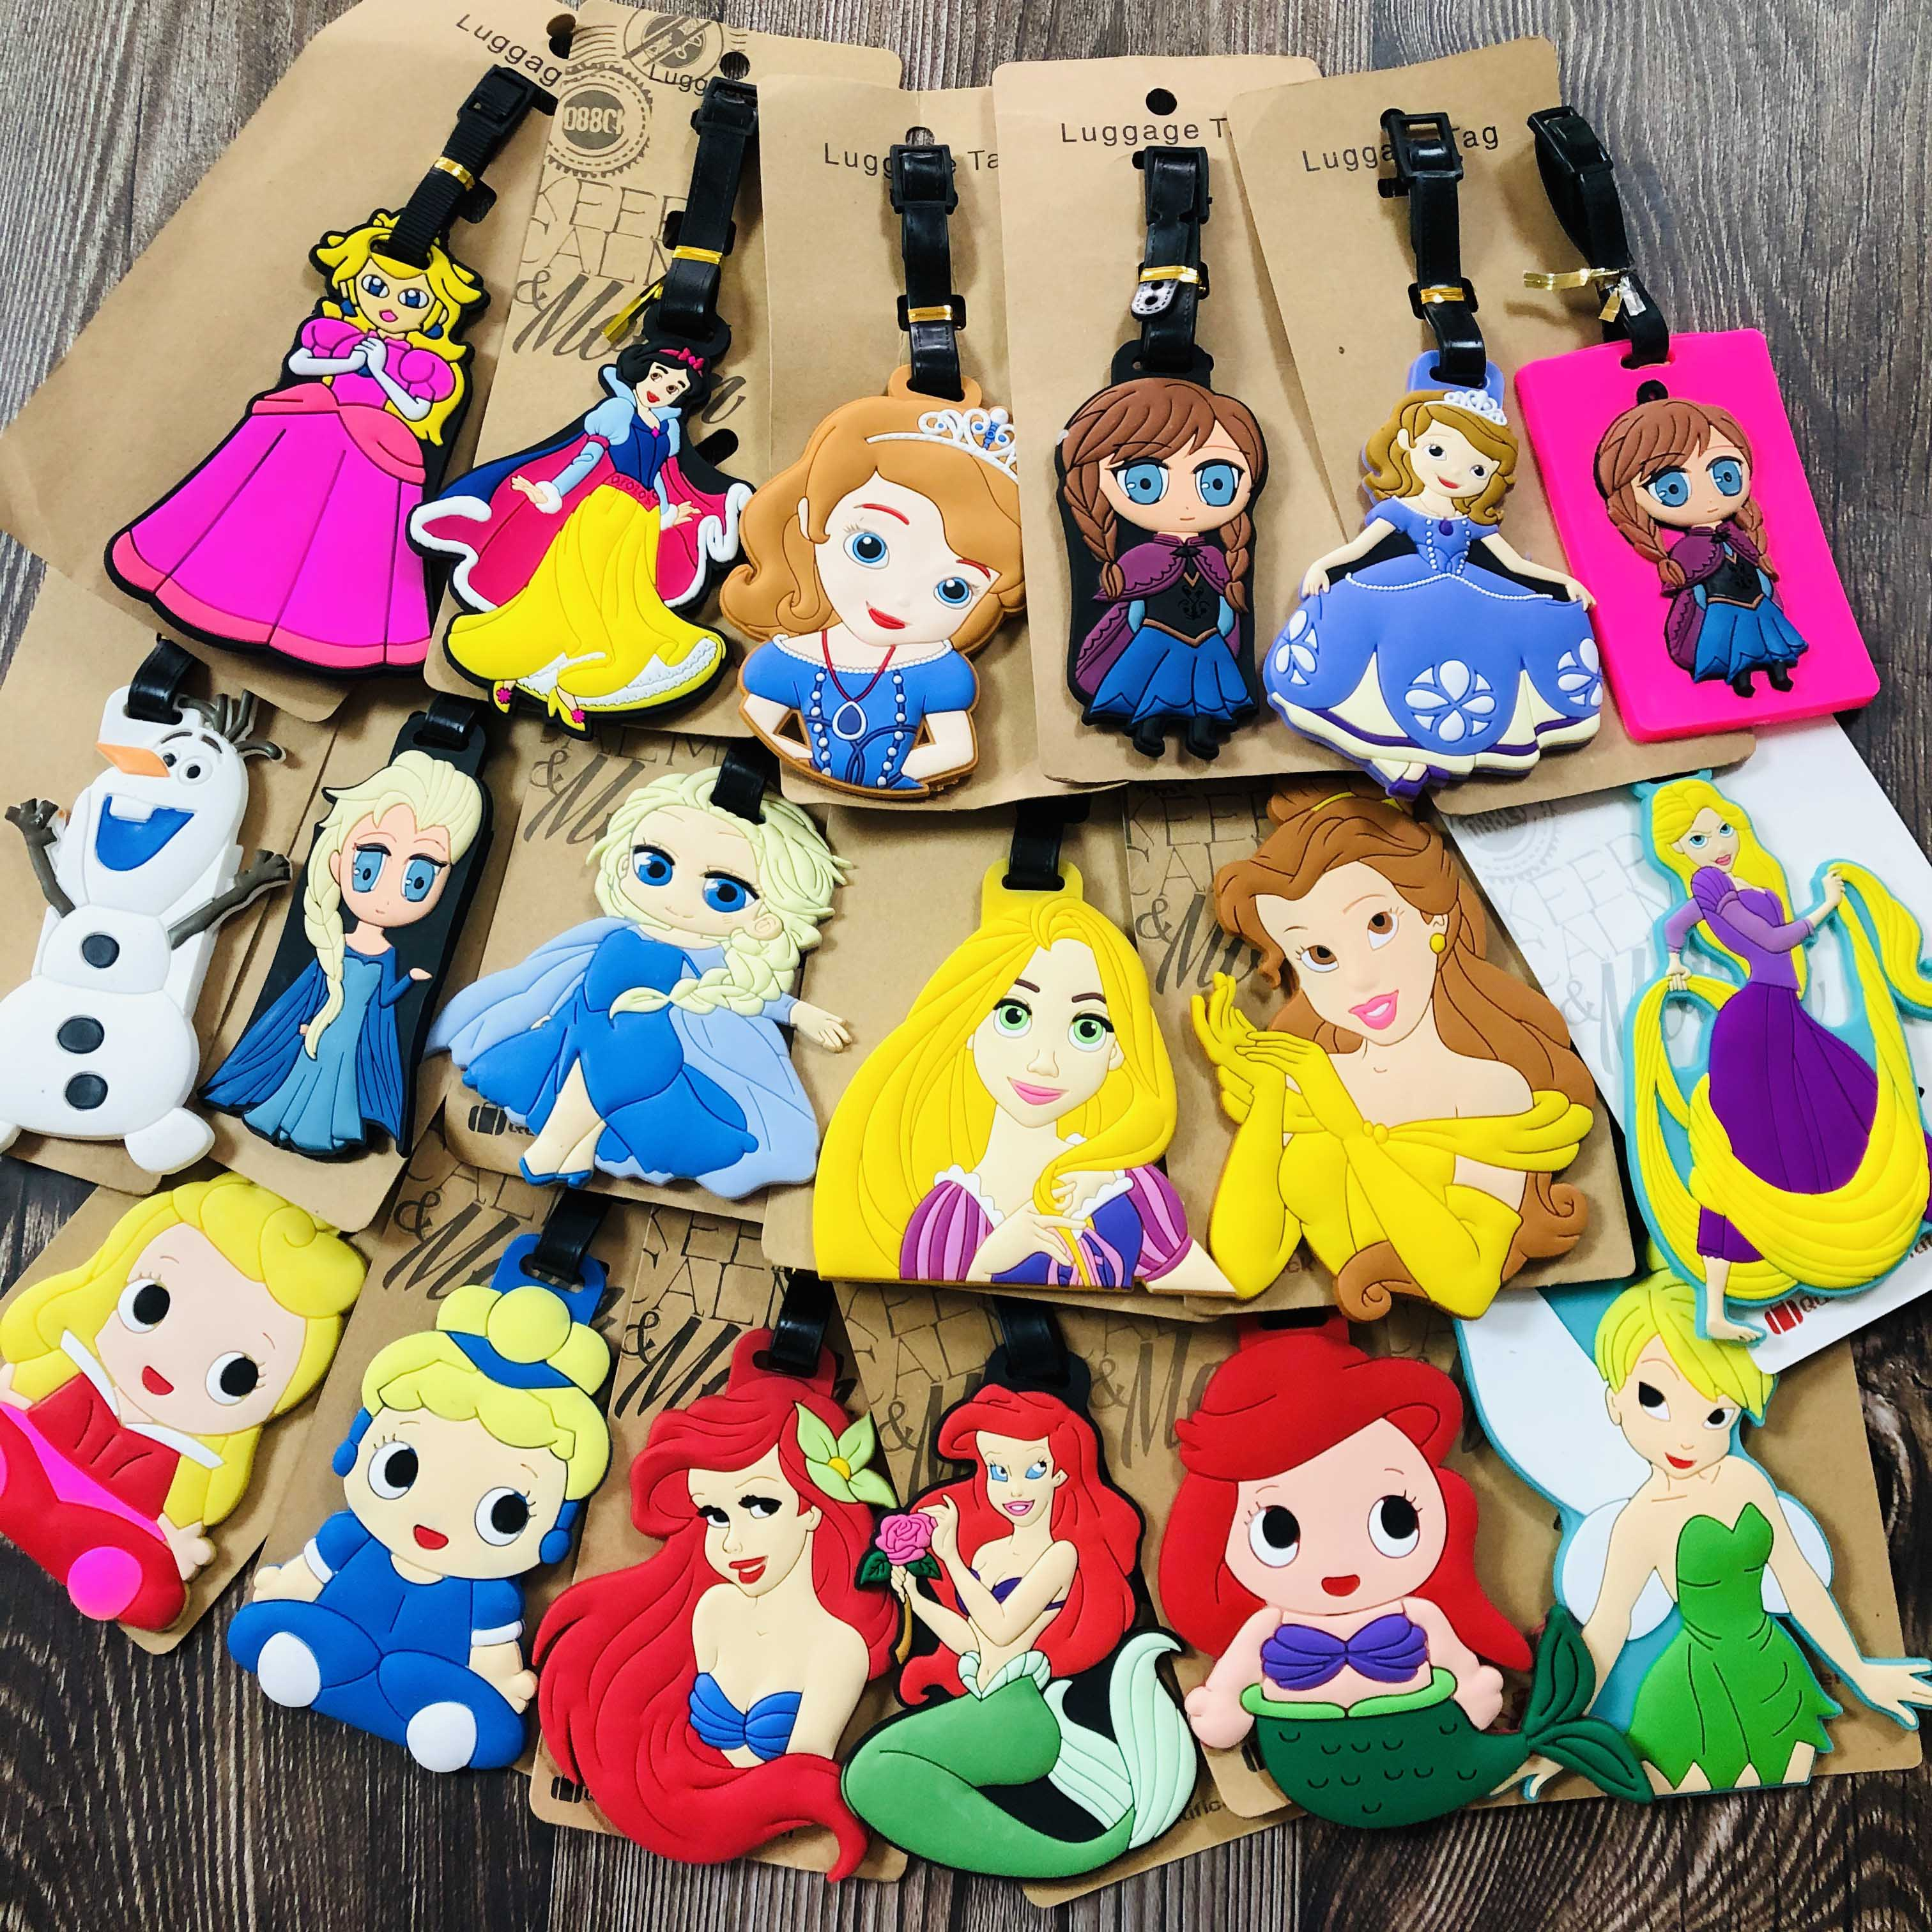 Princess Series Anime Travel Accessories Luggage Tag Suitcase ID Portable Tags Holder Baggage Labels Gifts New